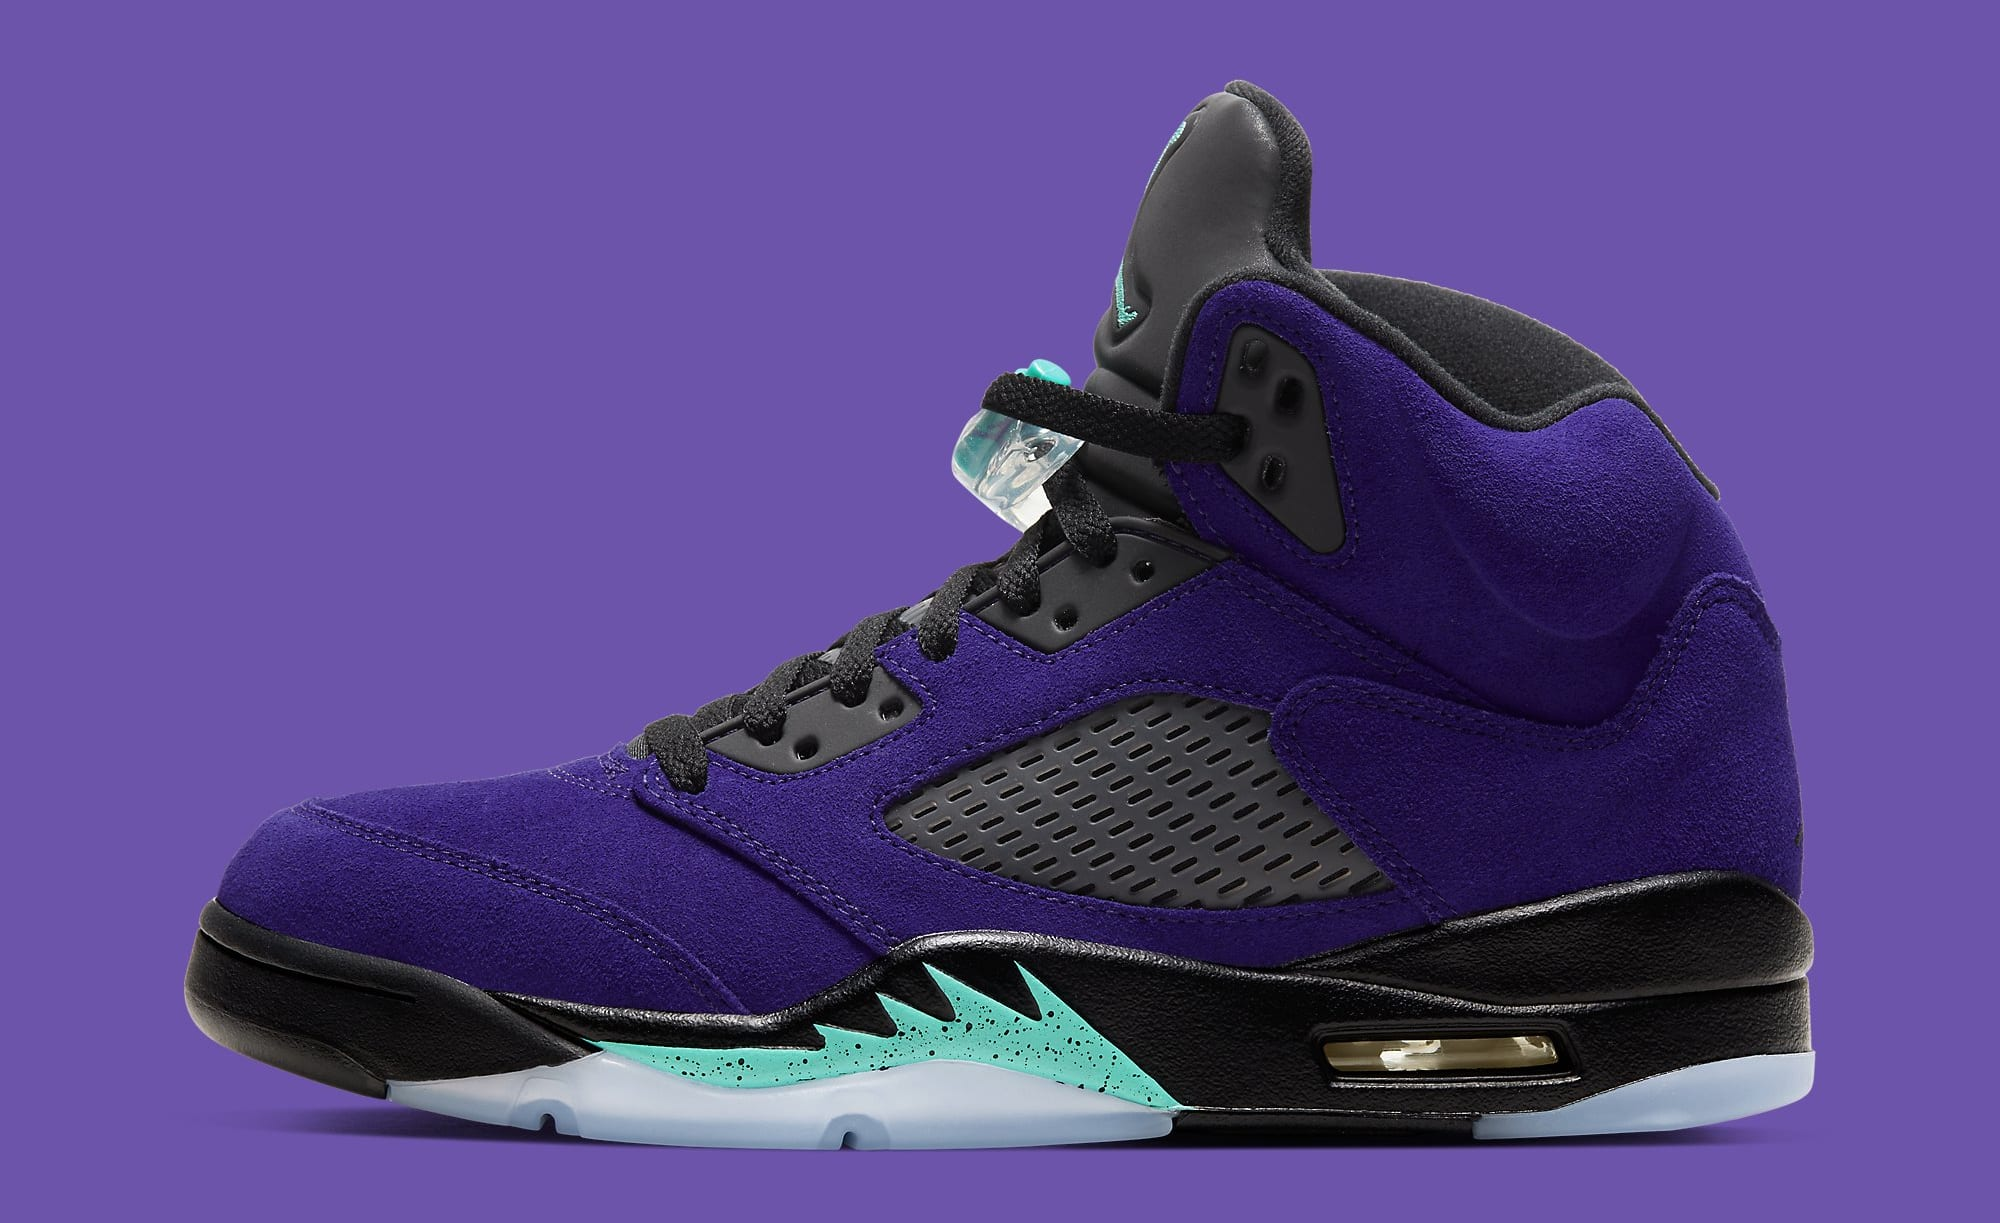 Air Jordan 5 Retro 'Alternate Grape' 136027-500 Lateral